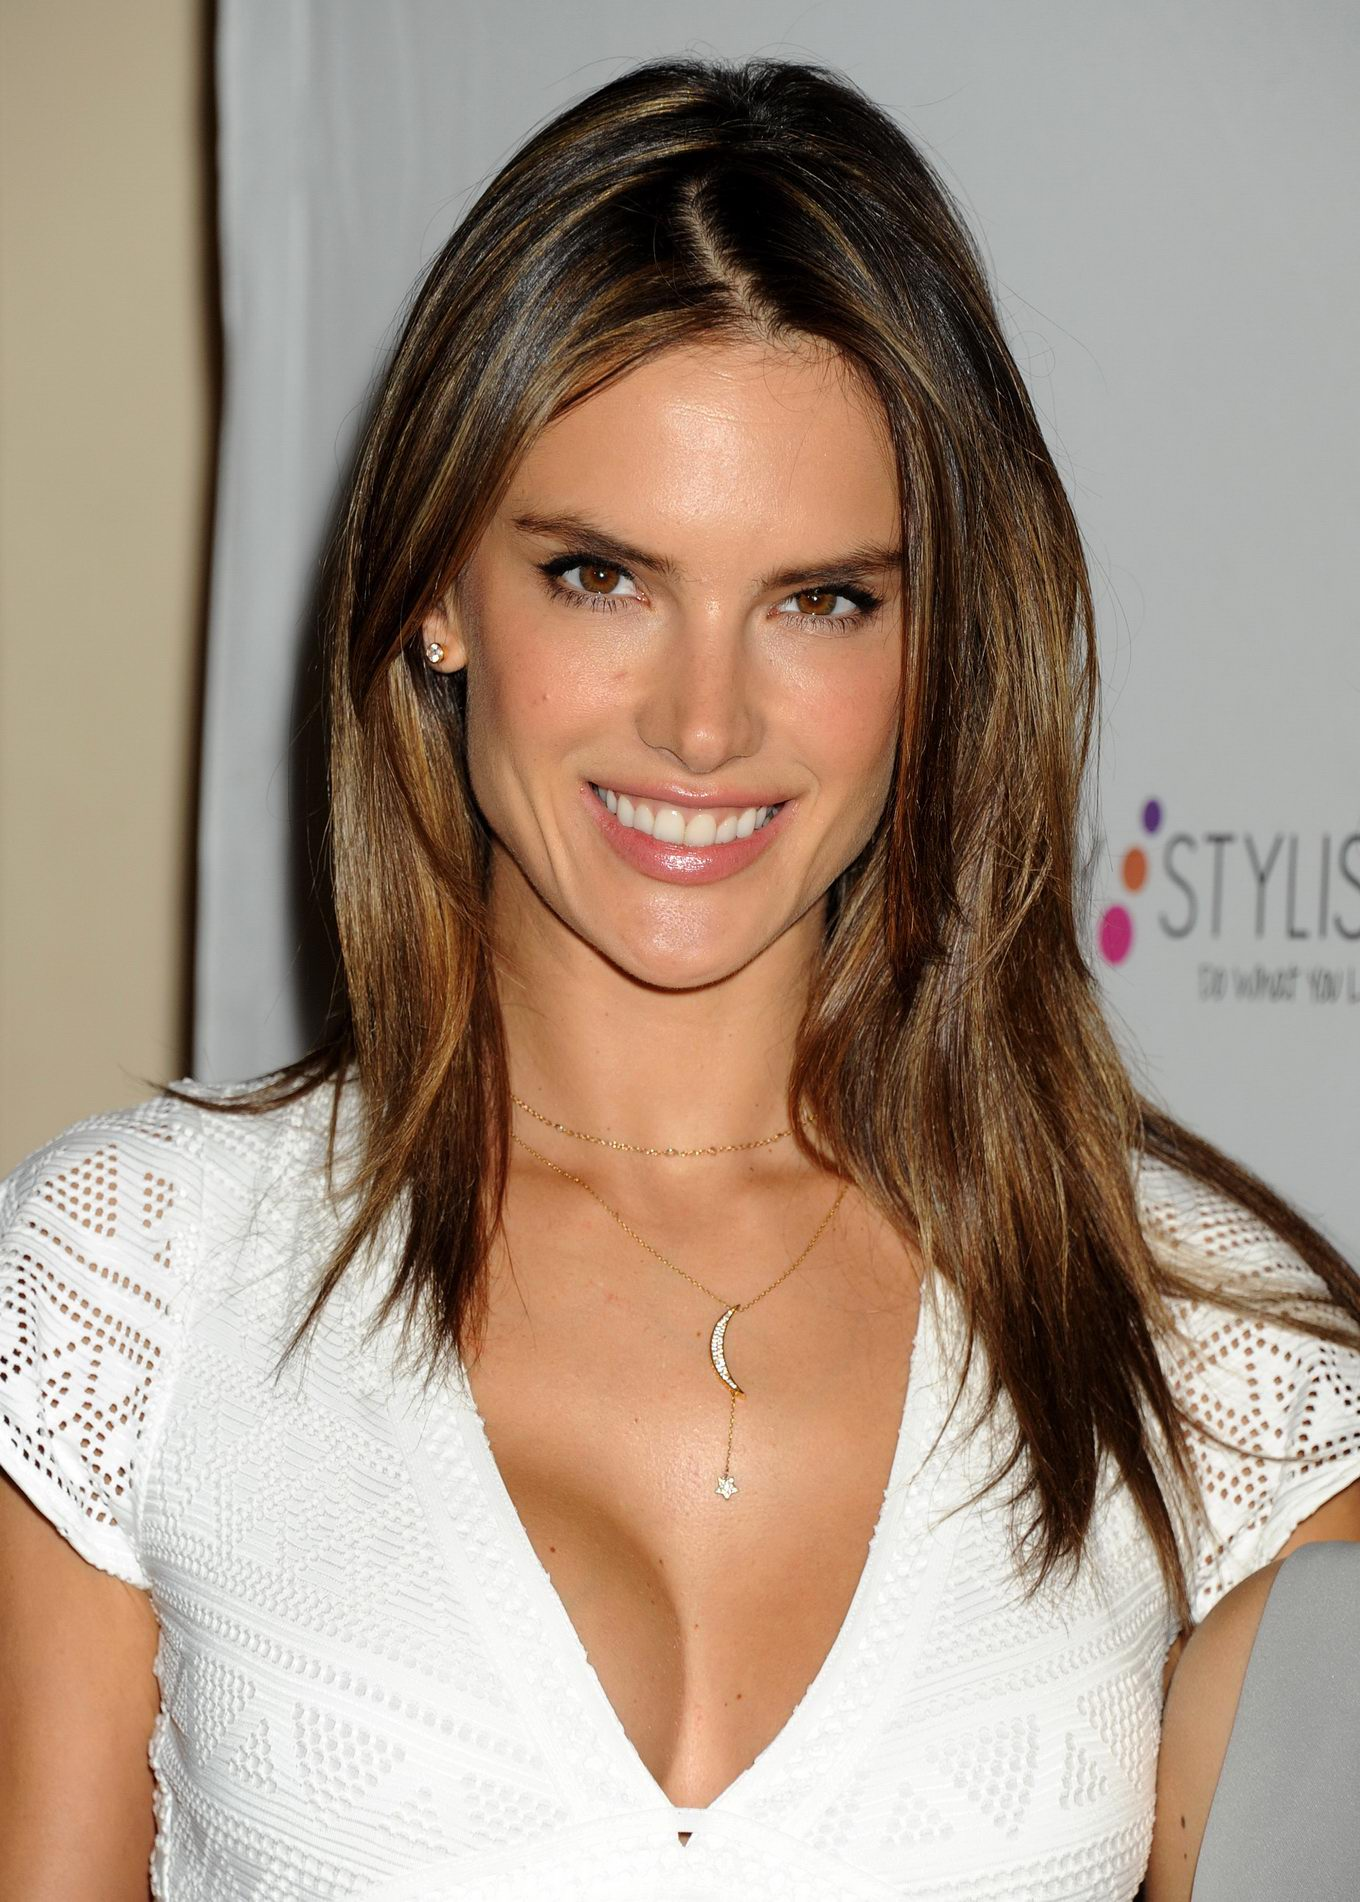 Alessandra Ambrosio shows huge cleavage wearing a white ... Alessandra Ambrosio